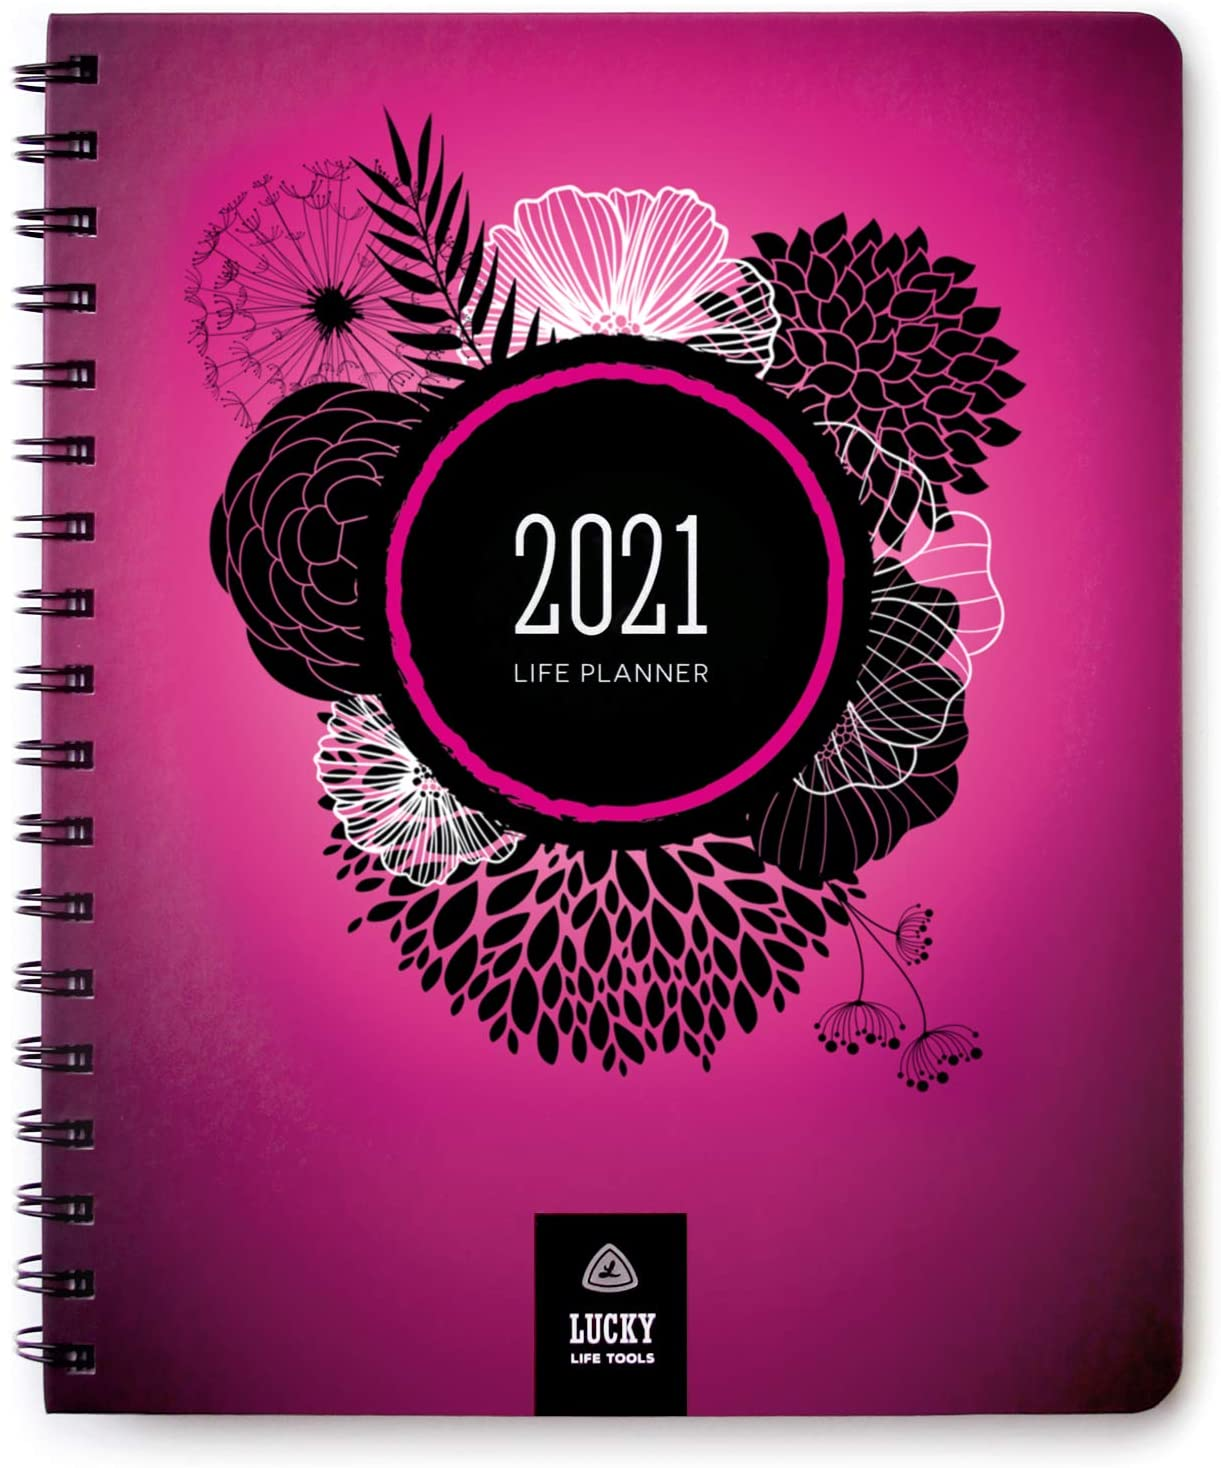 LUCKY Life Planner 2021